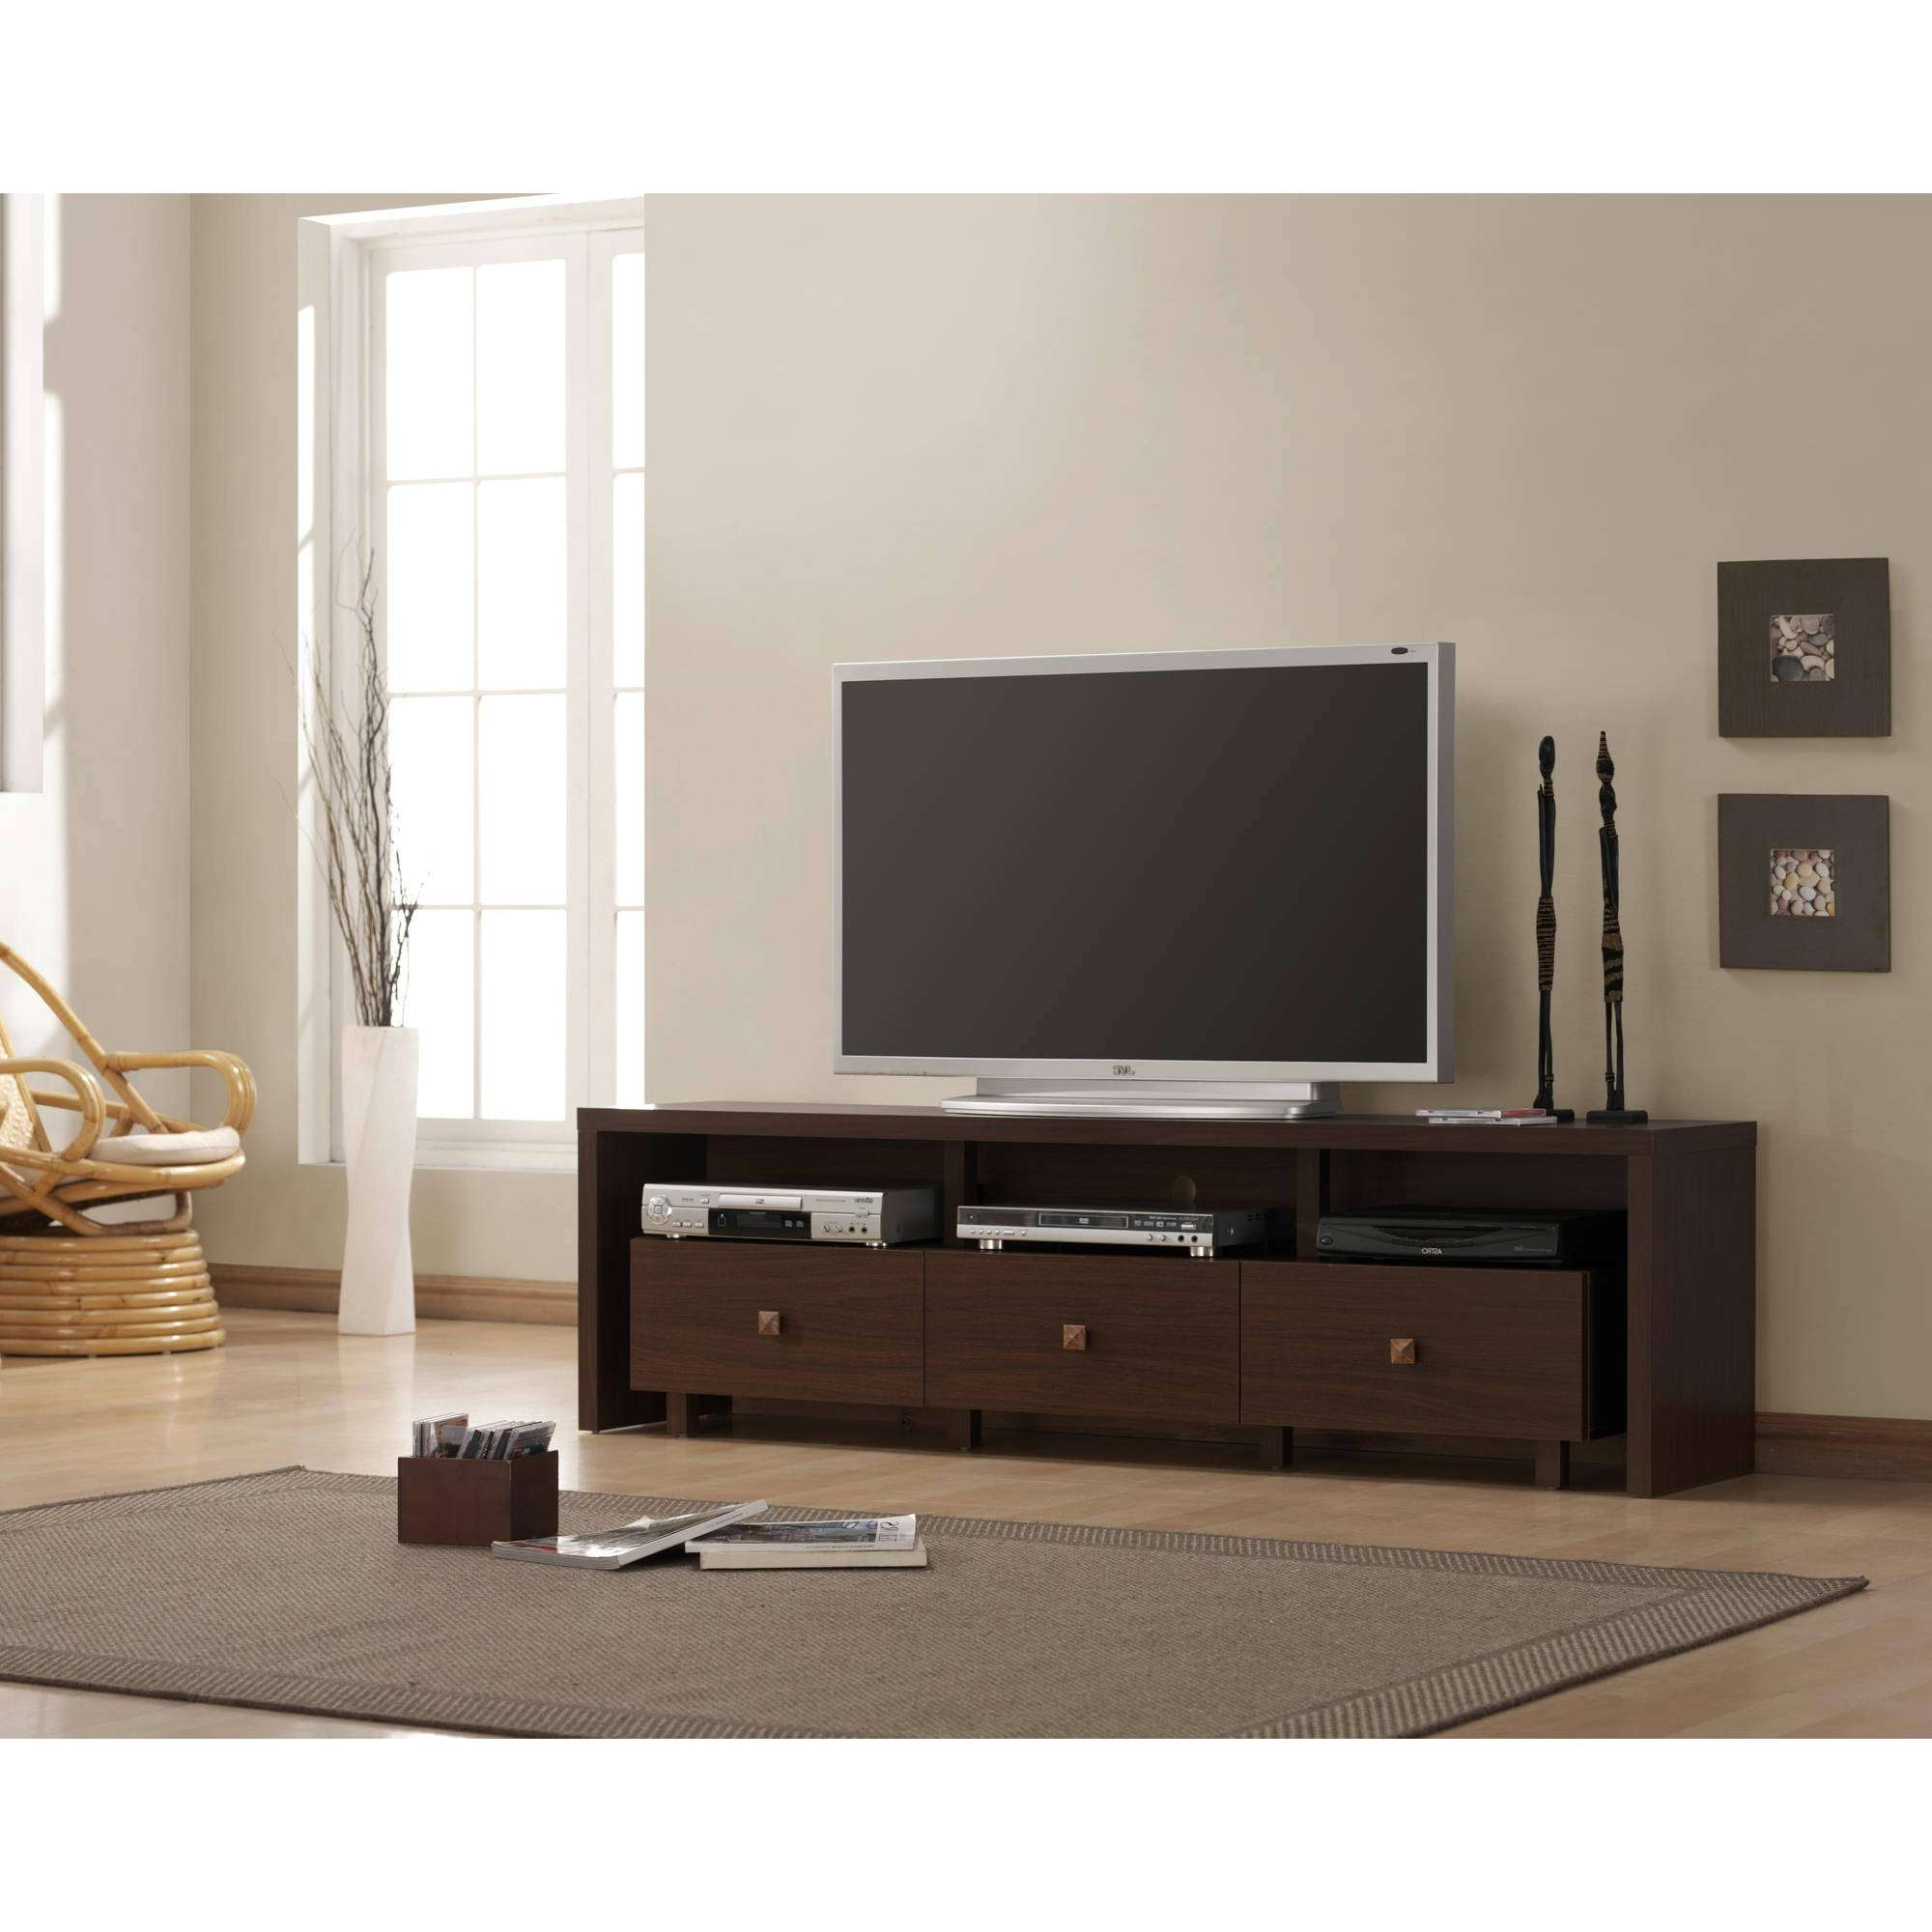 Reputable More Information Newton Tv Stand Home Entertainment From With Regard To Modern Tv Stands For 60 Inch Tvs (View 10 of 15)